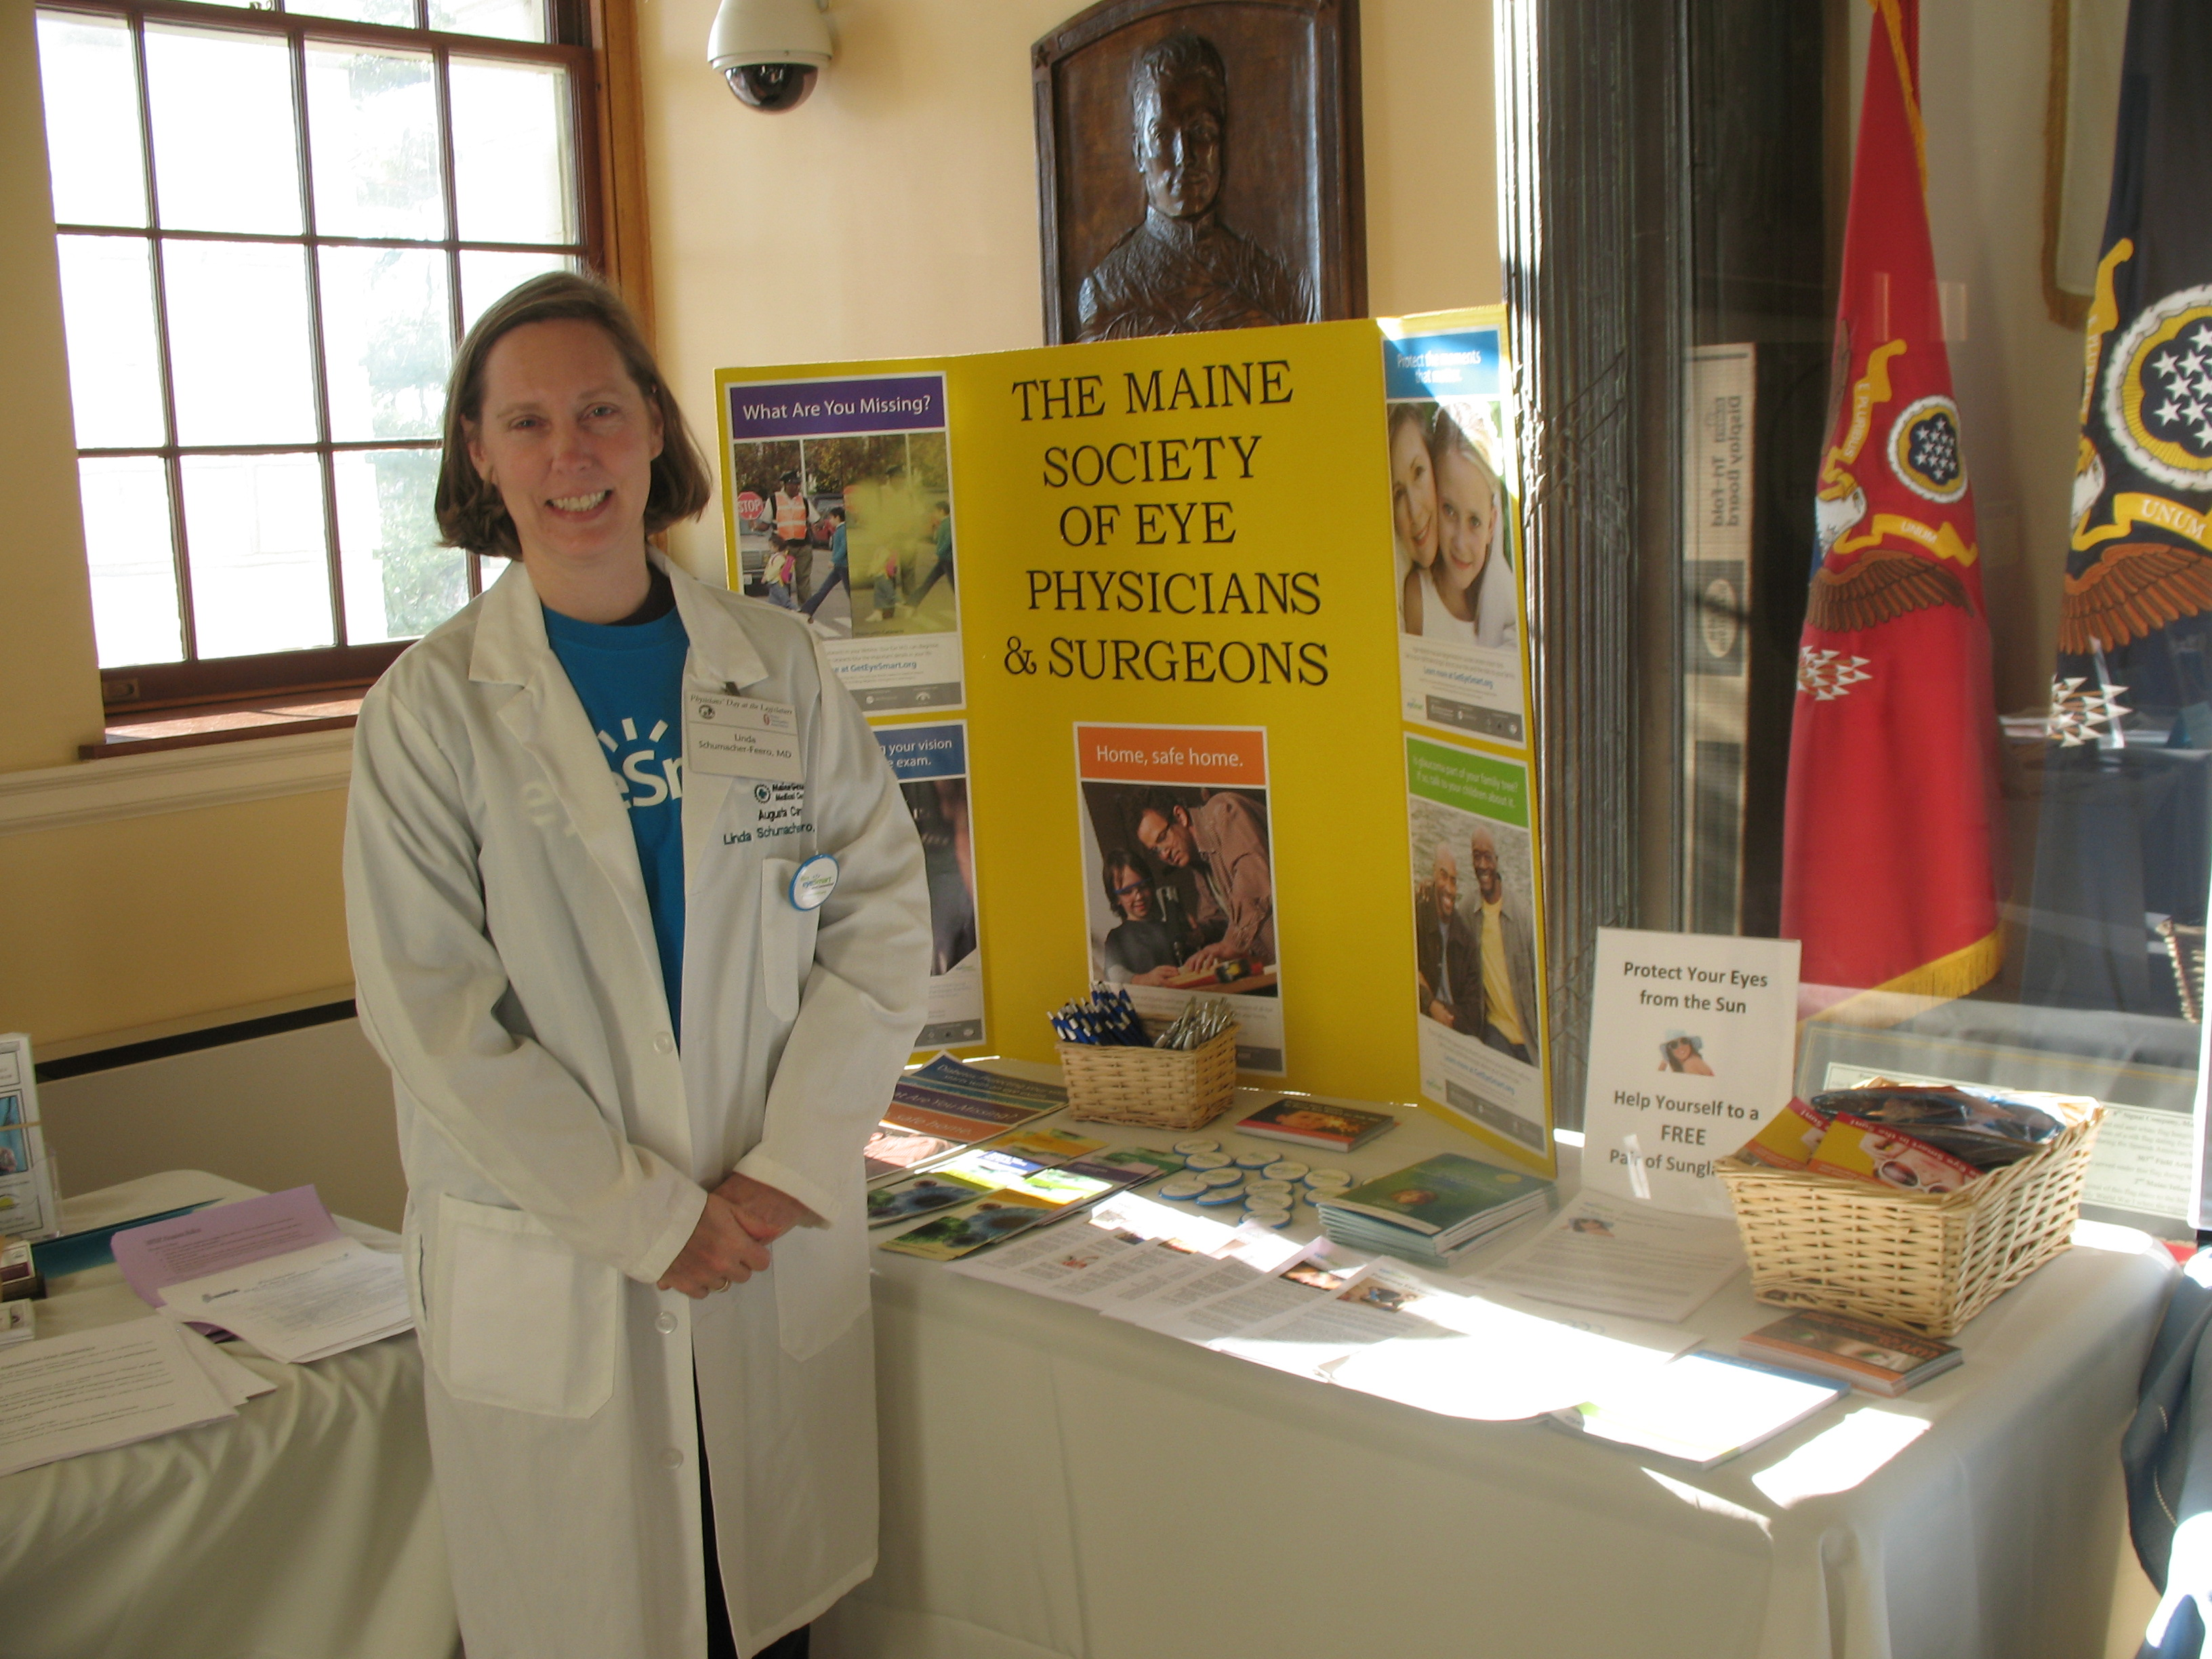 Linda Schumacher Feero, MD, President, Maine Society of Eye Physicians and Surgeons at MSEPS Display Booth